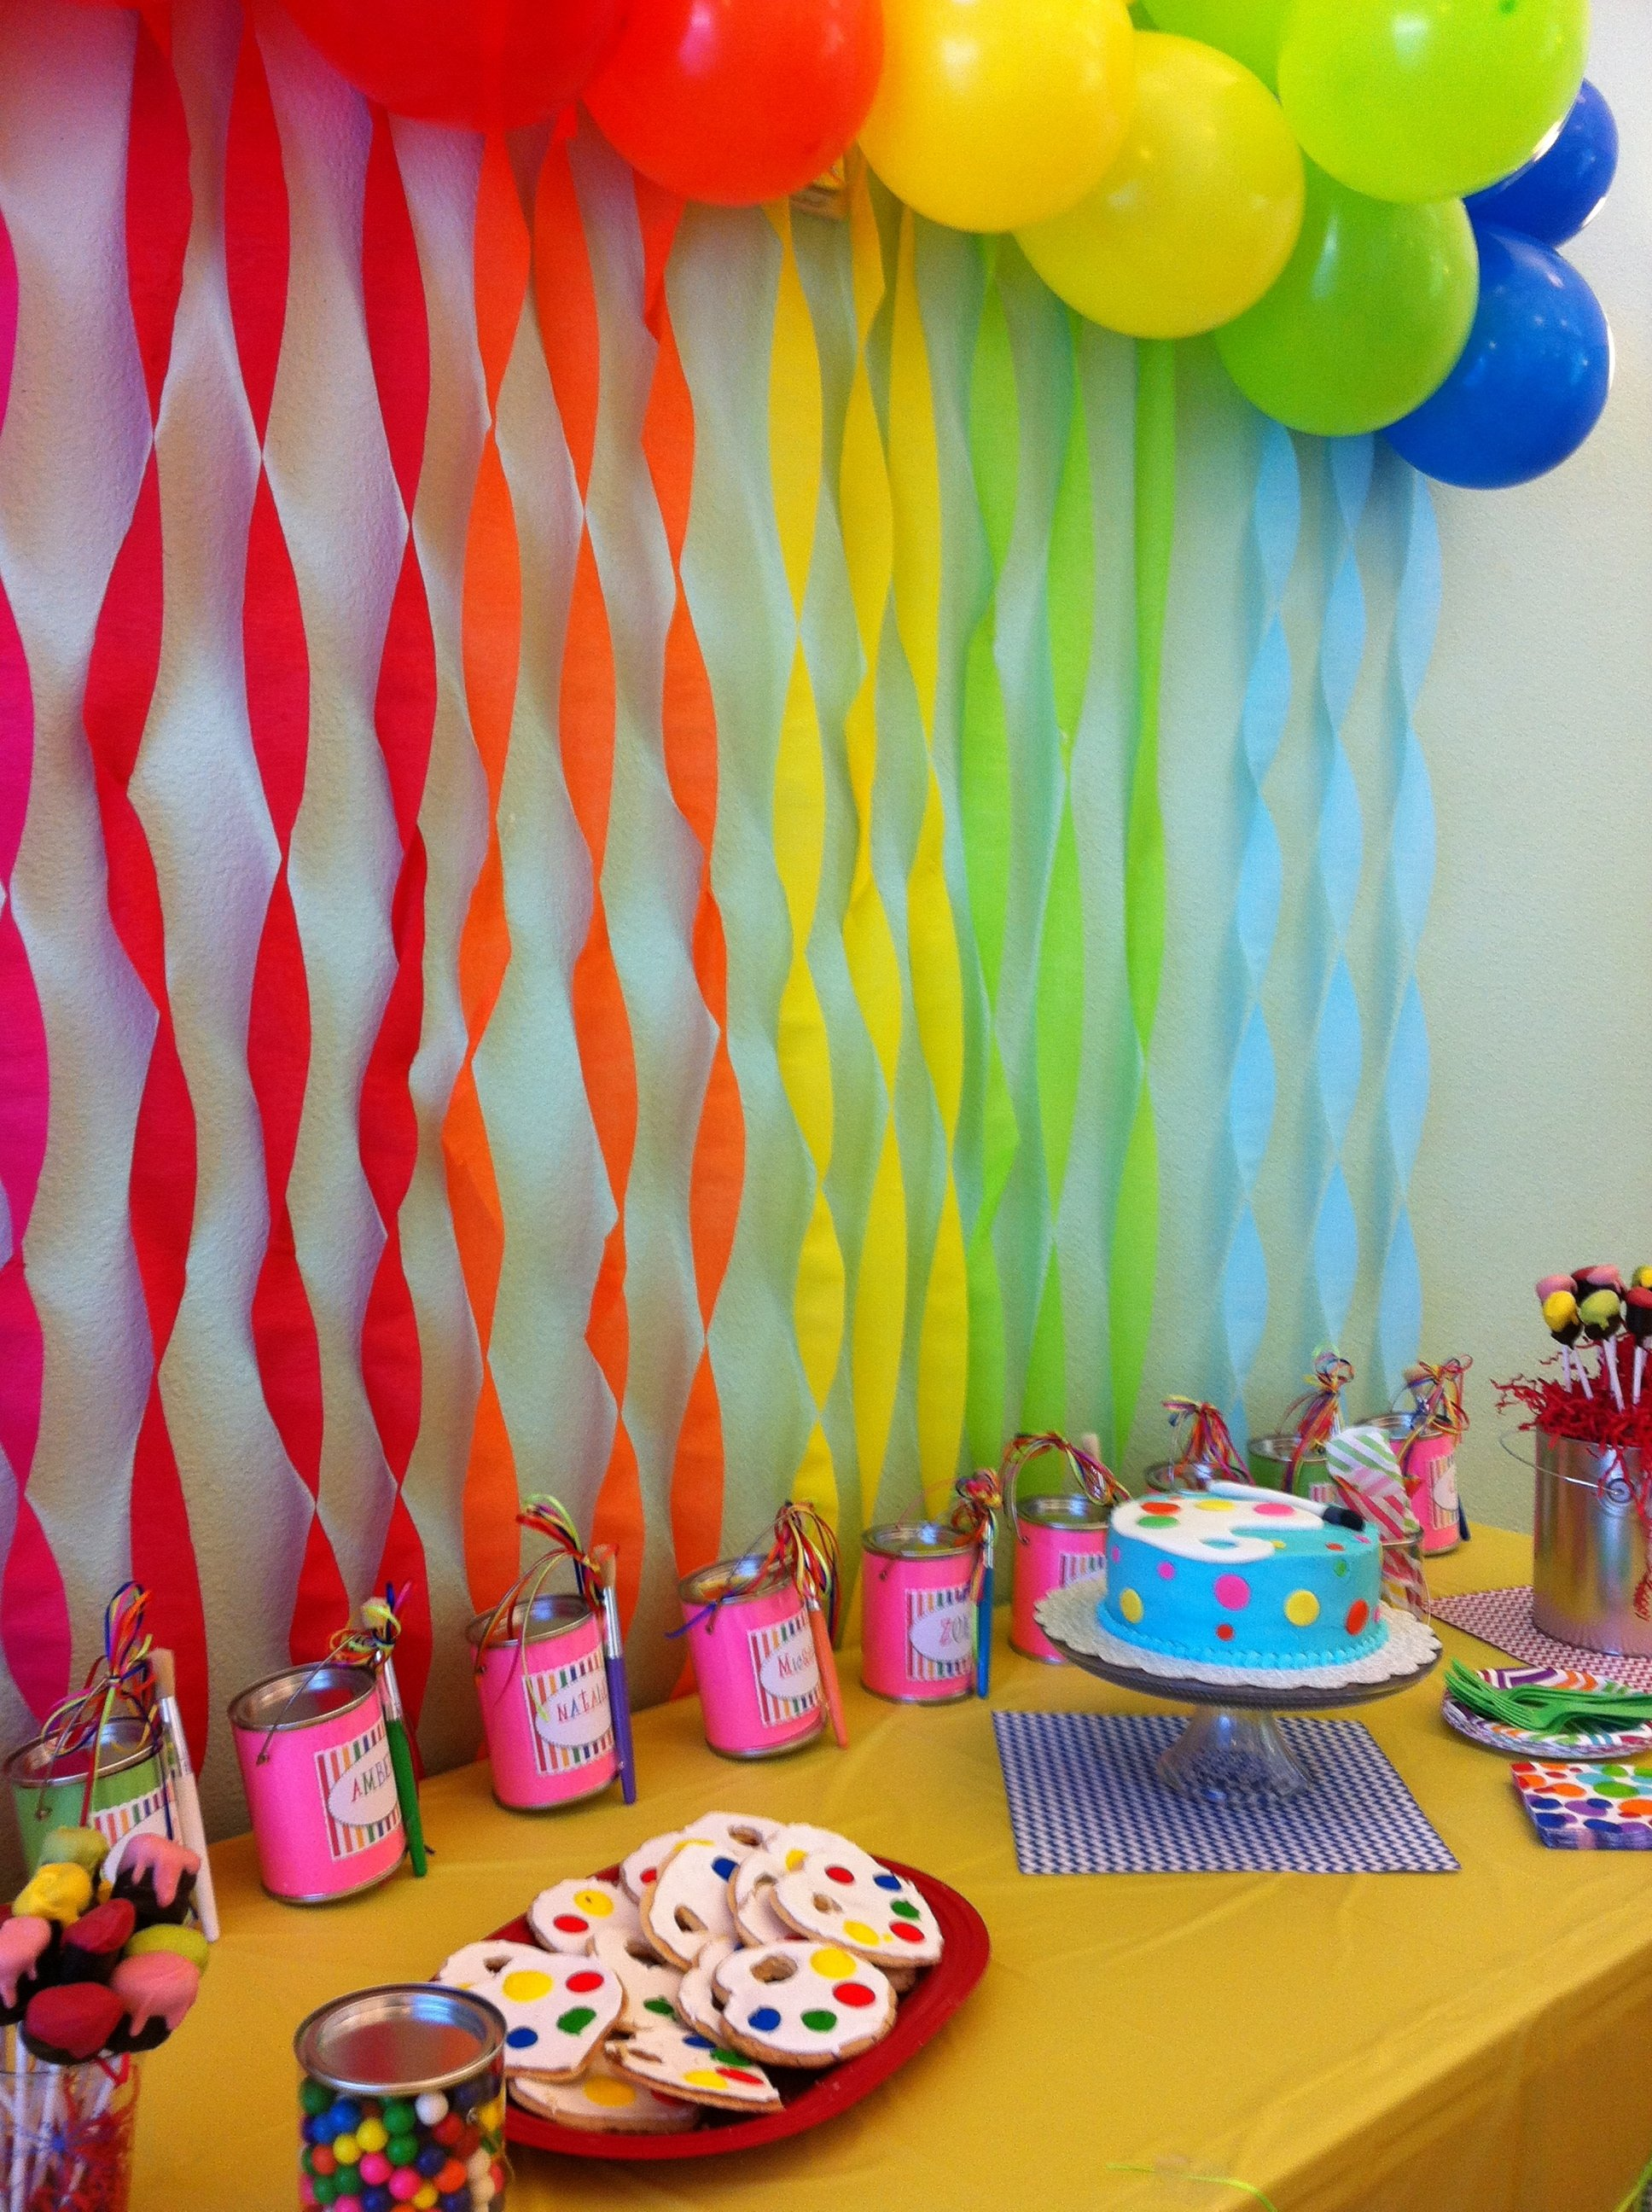 10 Spectacular Ideas For A 4 Year Old Birthday Party 5